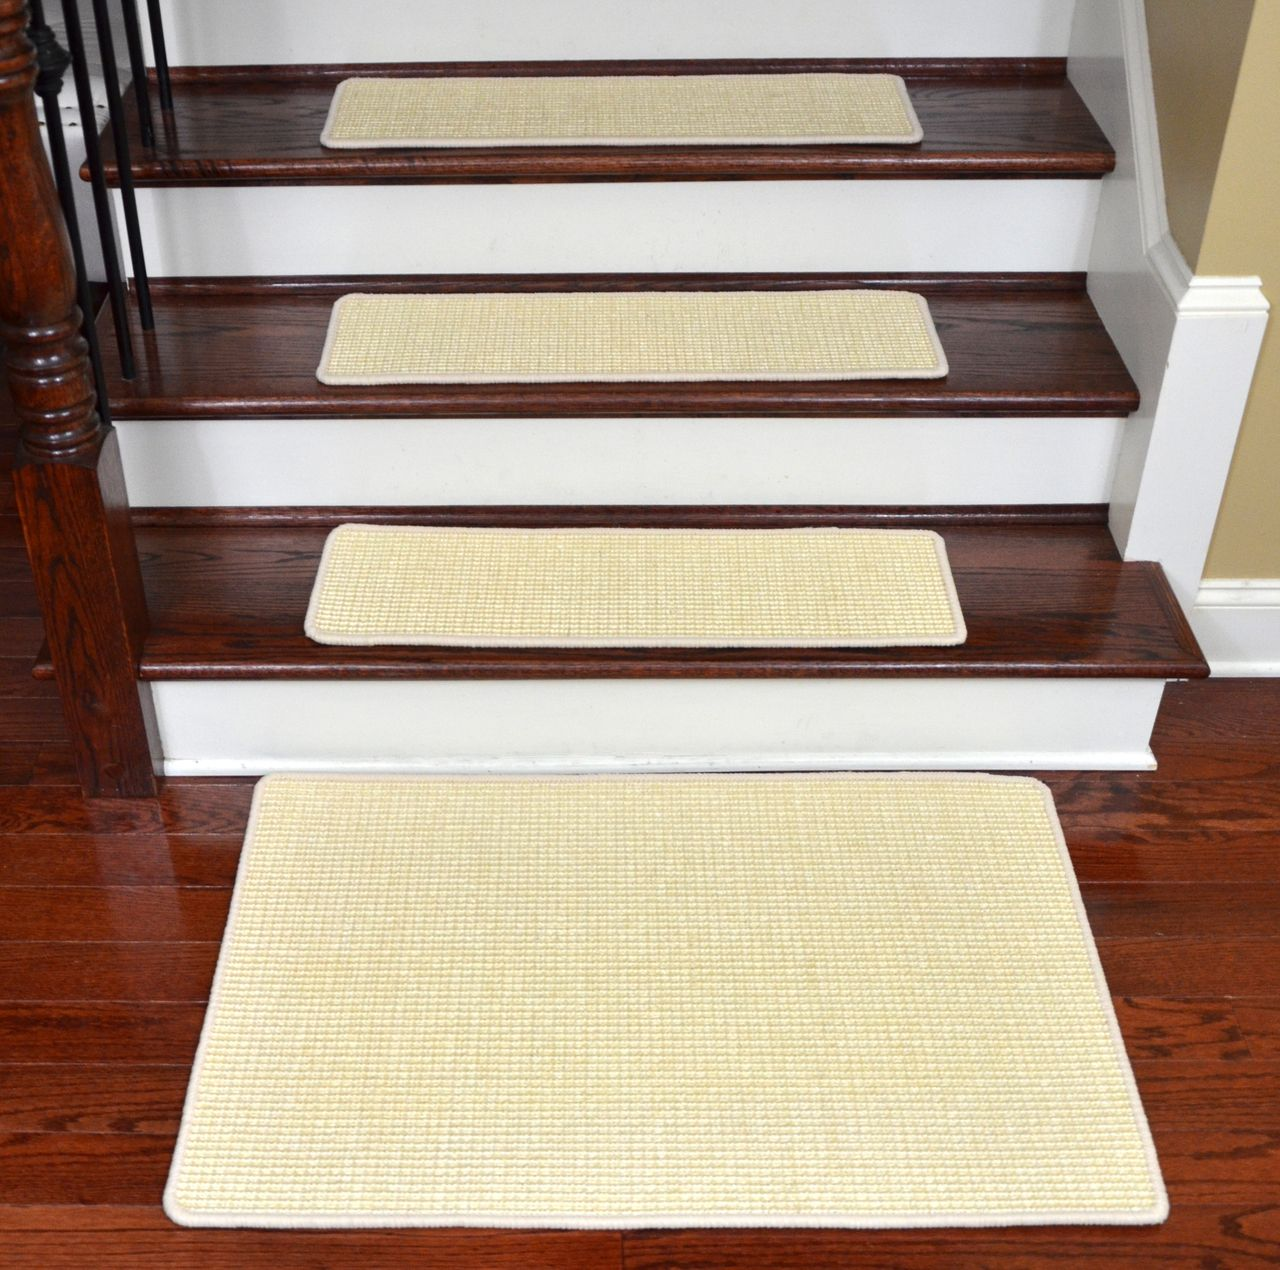 Best Dean Non Slip Tape Free Pet Friendly Stair Gripper Natural 400 x 300